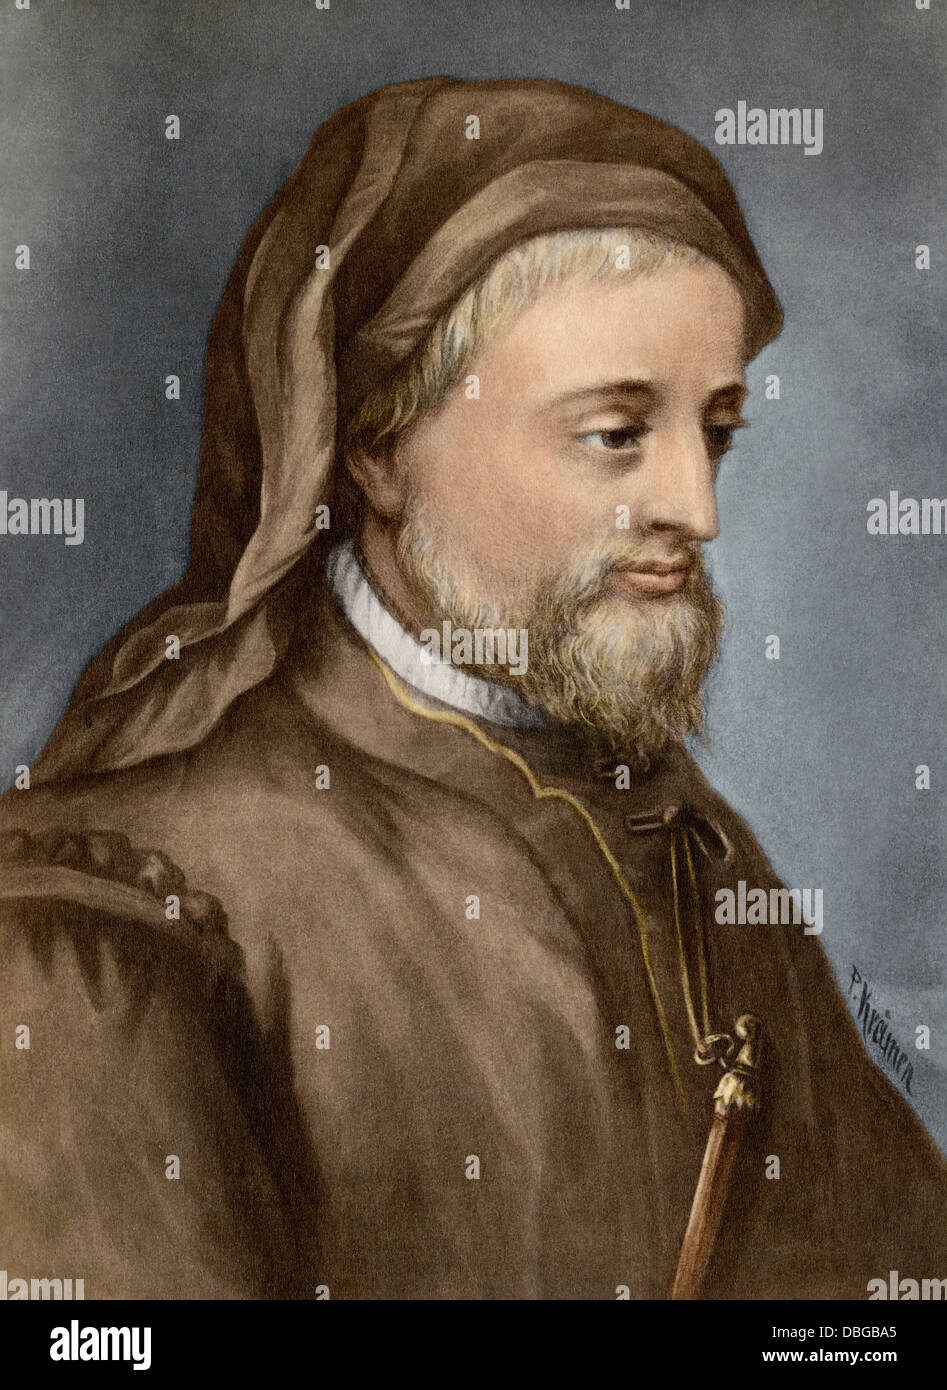 Geoffrey Chaucer. Hand-colored photogravure of a painting - Stock Image